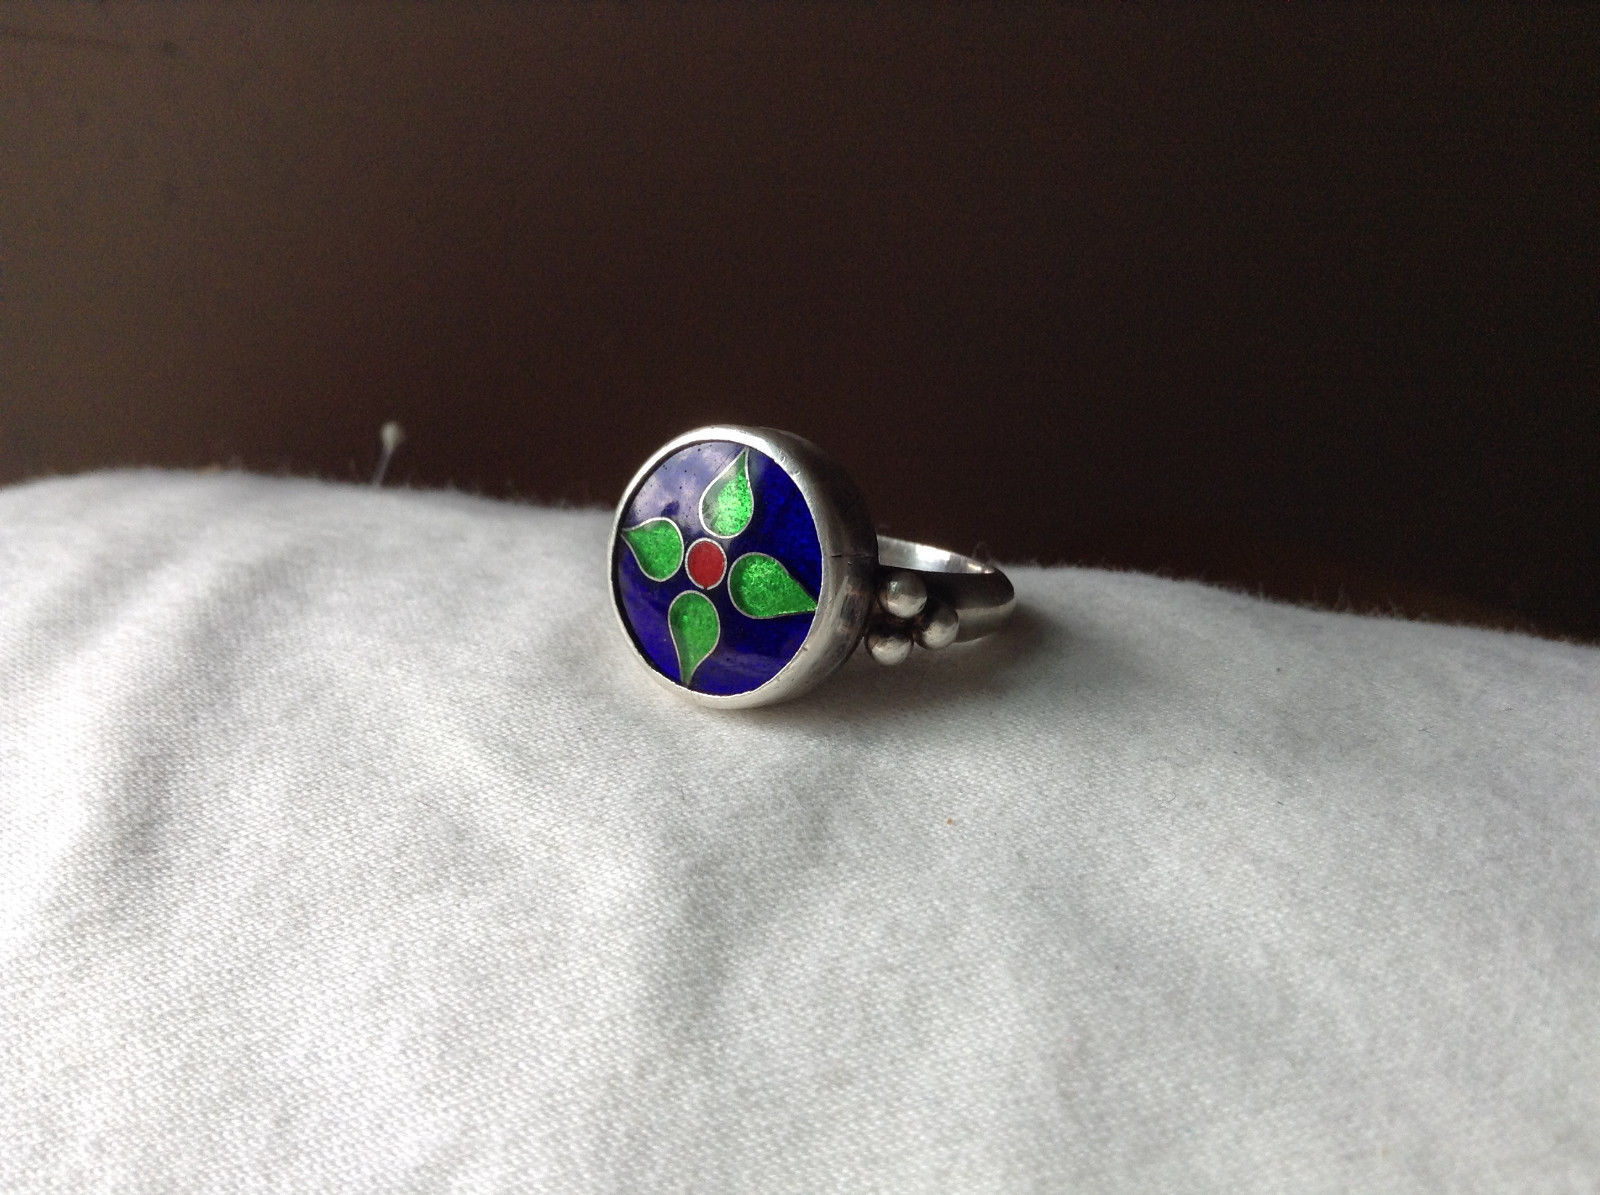 Round Green Blue Flower Design Silver Ring Size 7.5